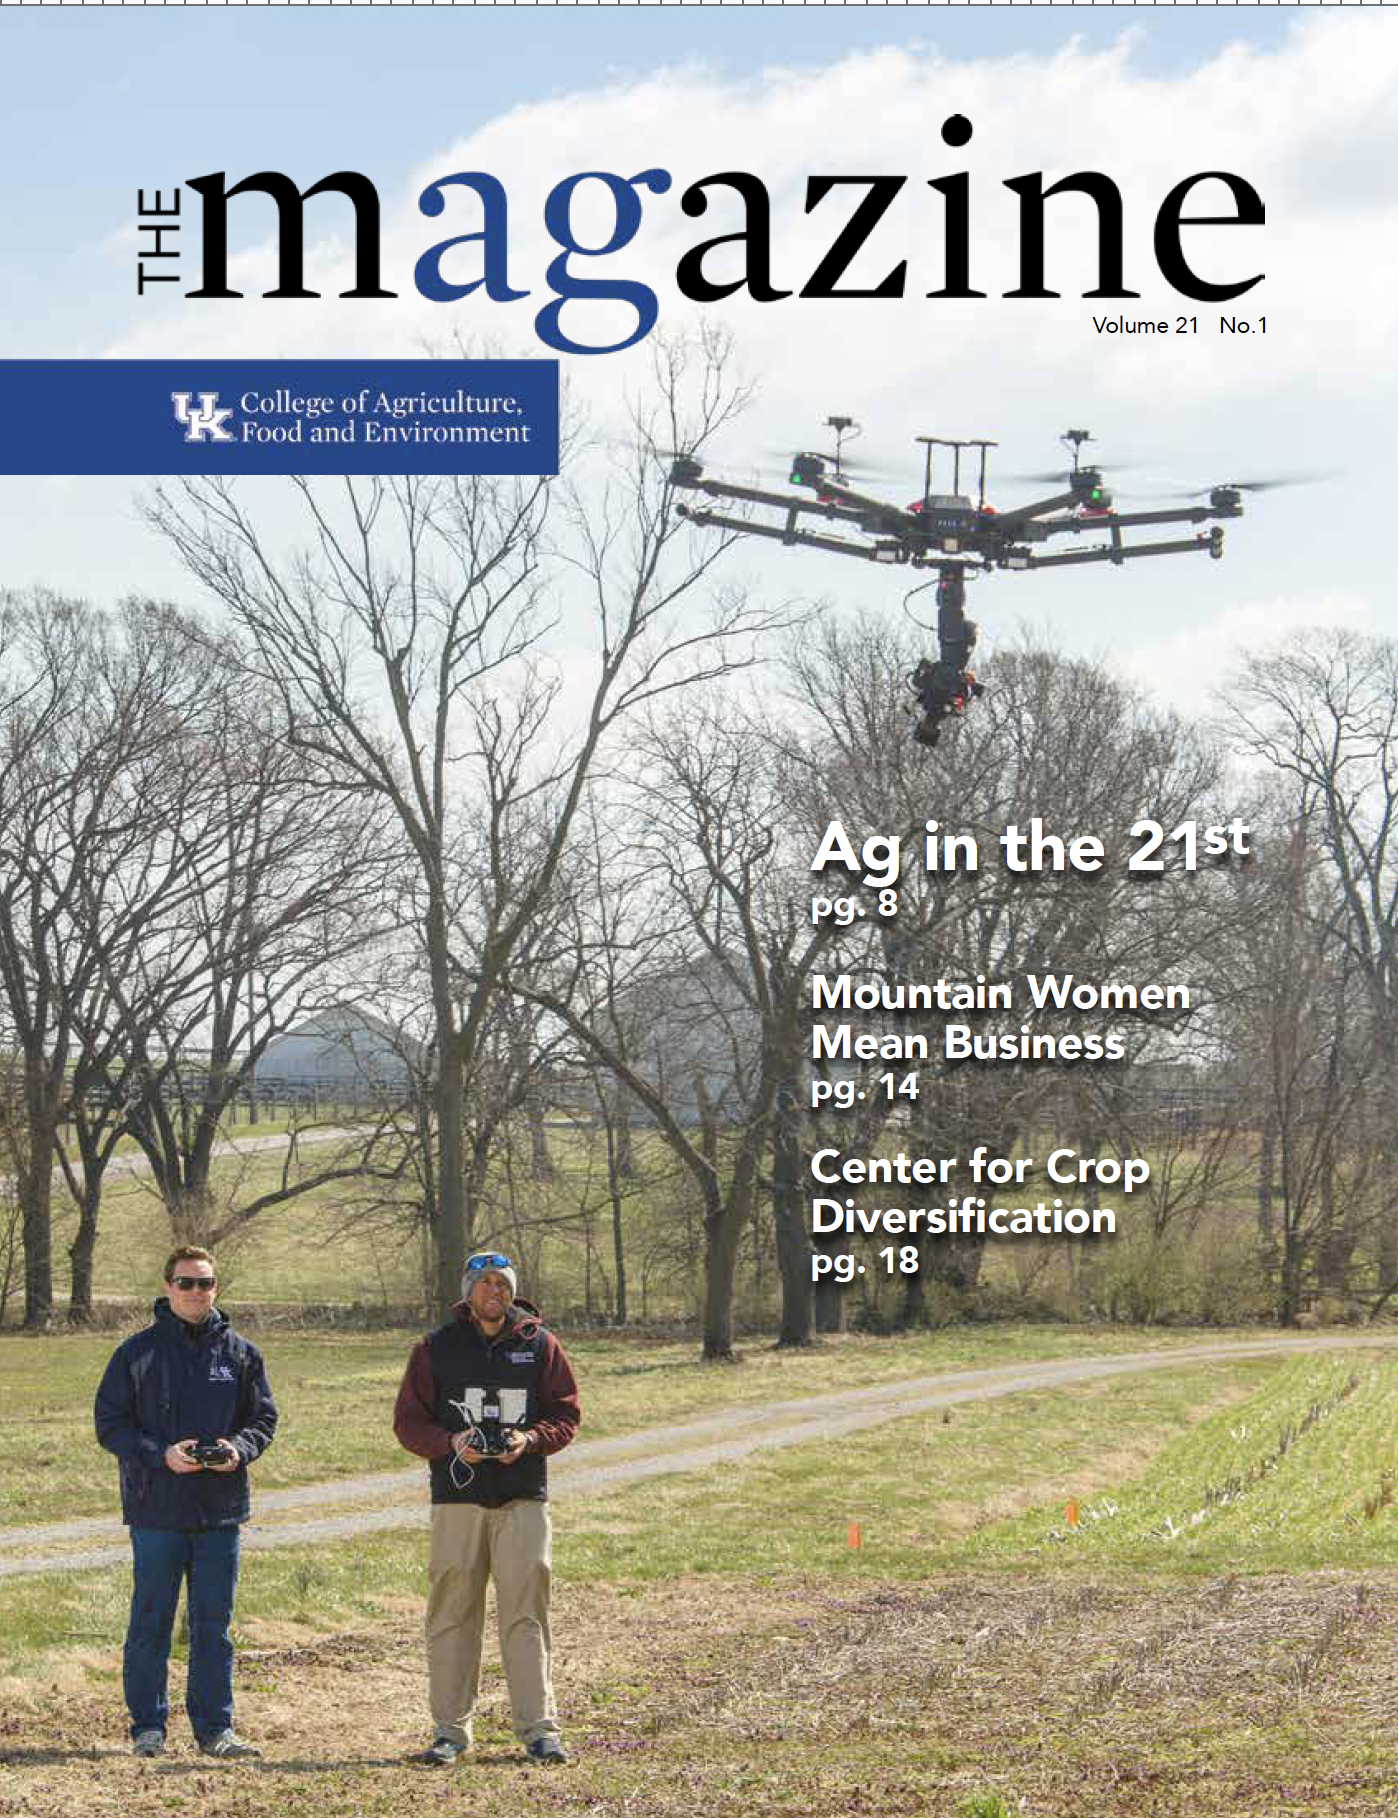 Spring 2019 Magazine Front Cover showing a Drone in flight